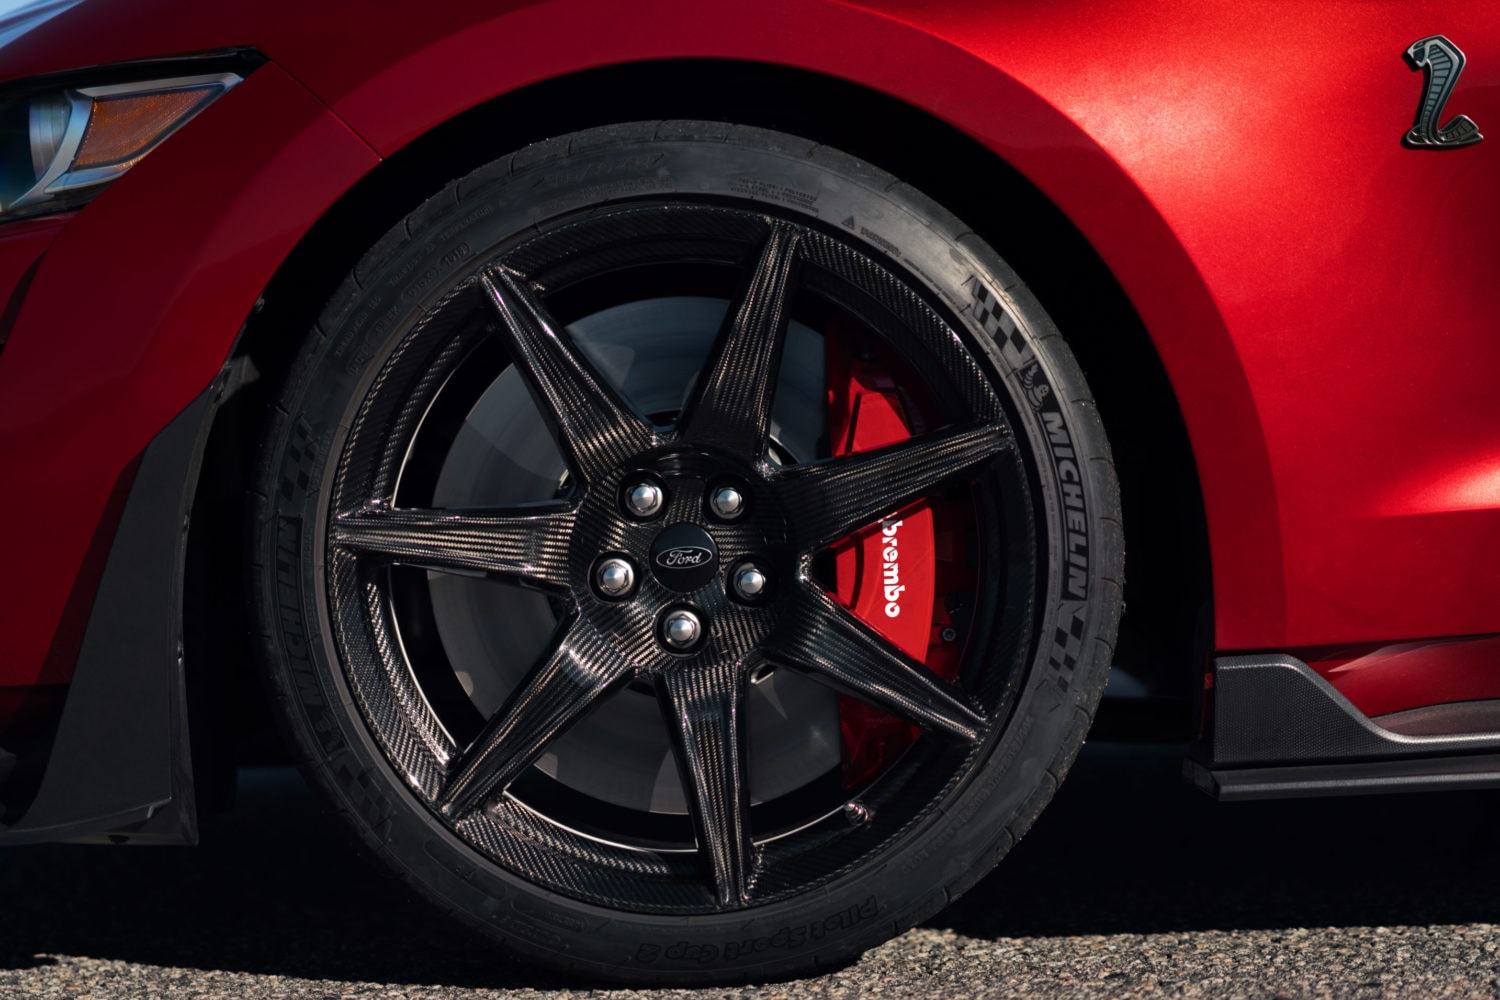 Shelby GT500 tires